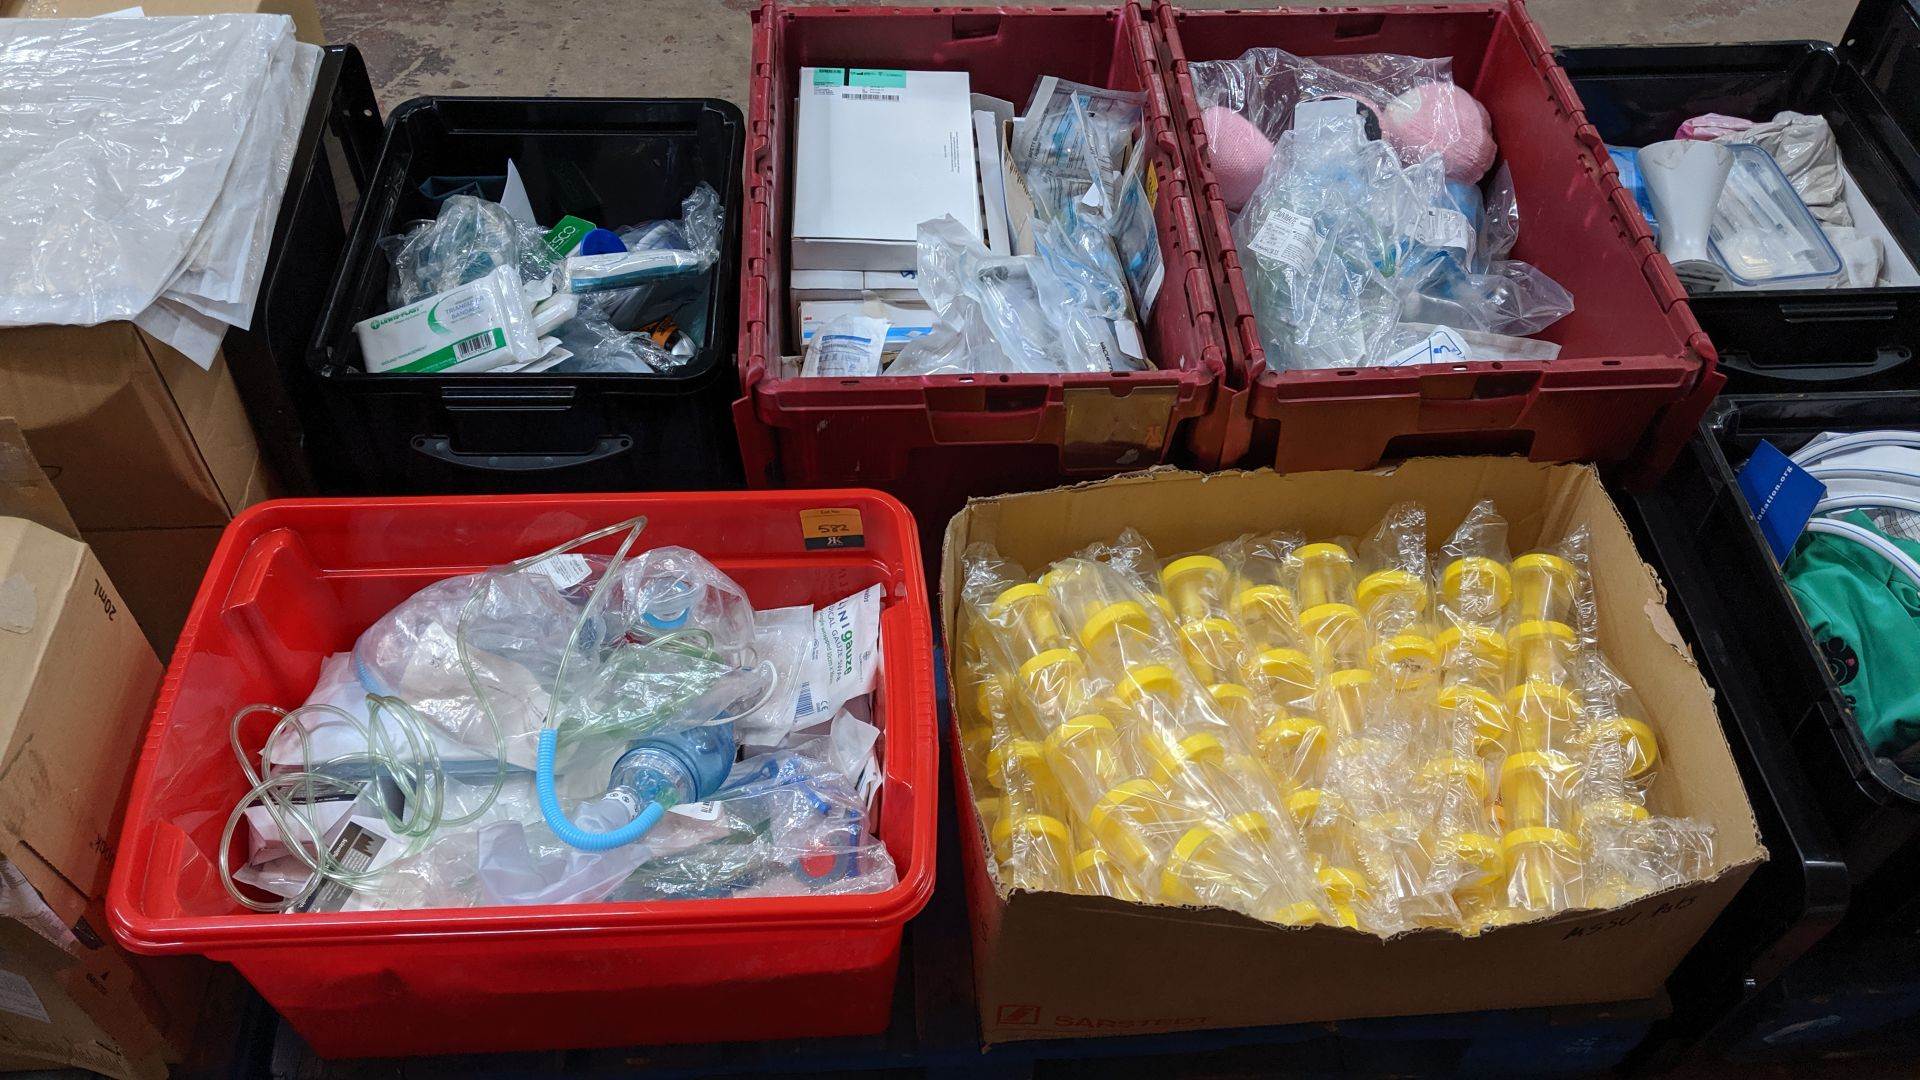 Lot 582 - Contents of a pallet of assorted medical supplies including single use resuscitators, beakers,